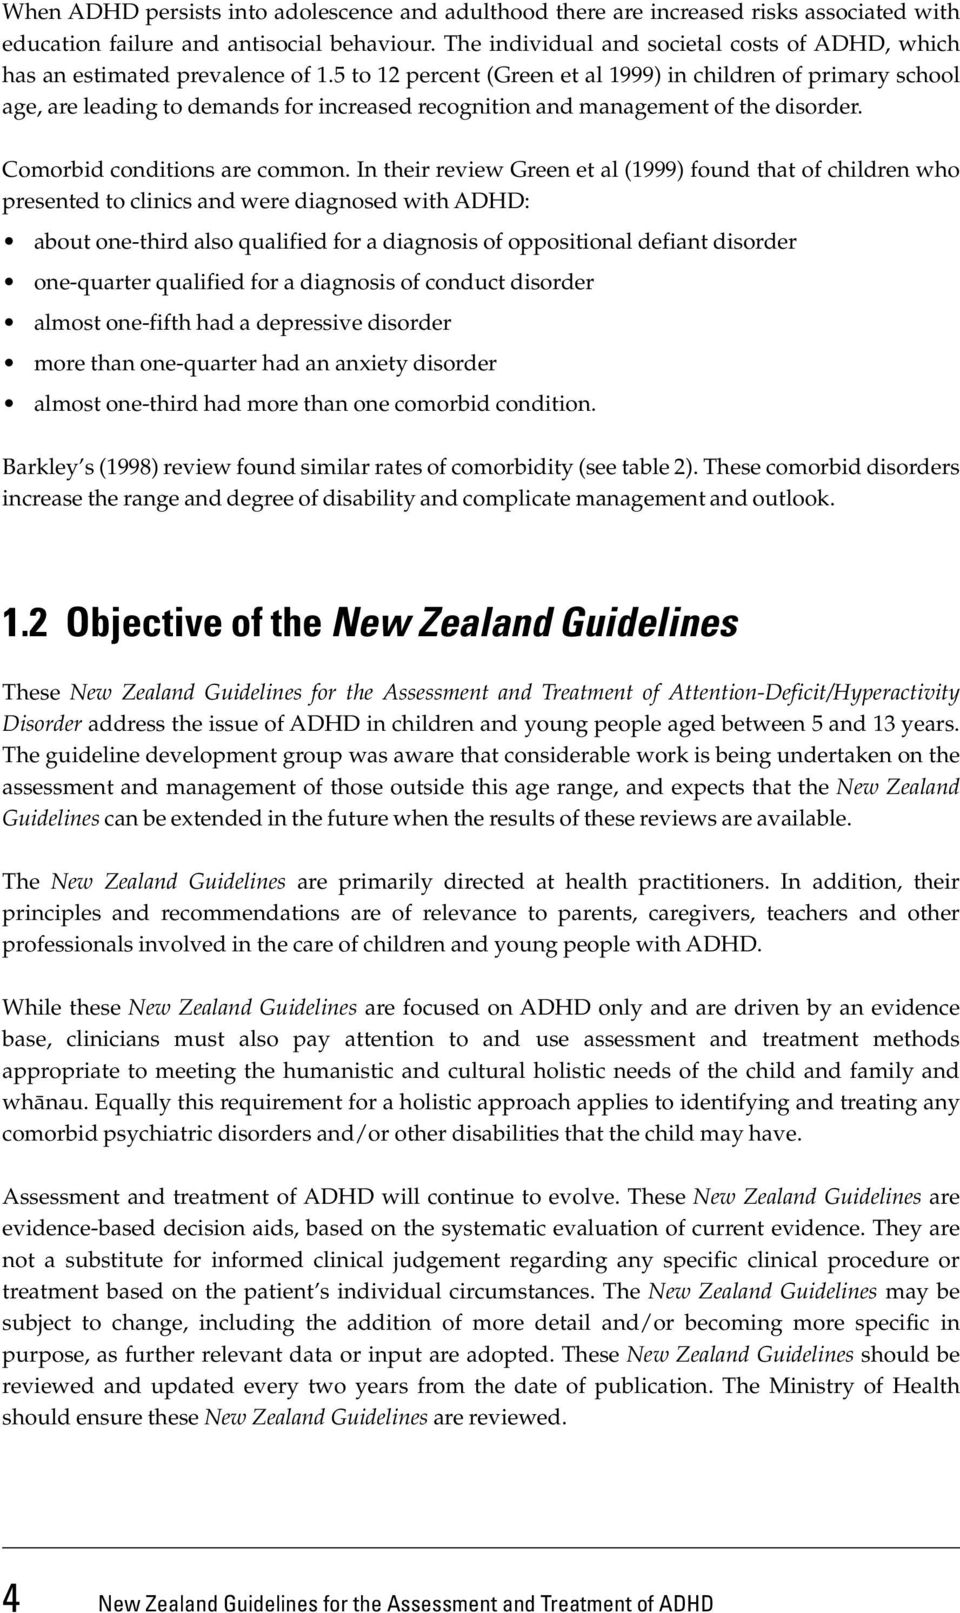 Adhd Evaluations Driven Mainly By >> New Zealand Guidelines For The Assessment And Treatment Of Attention